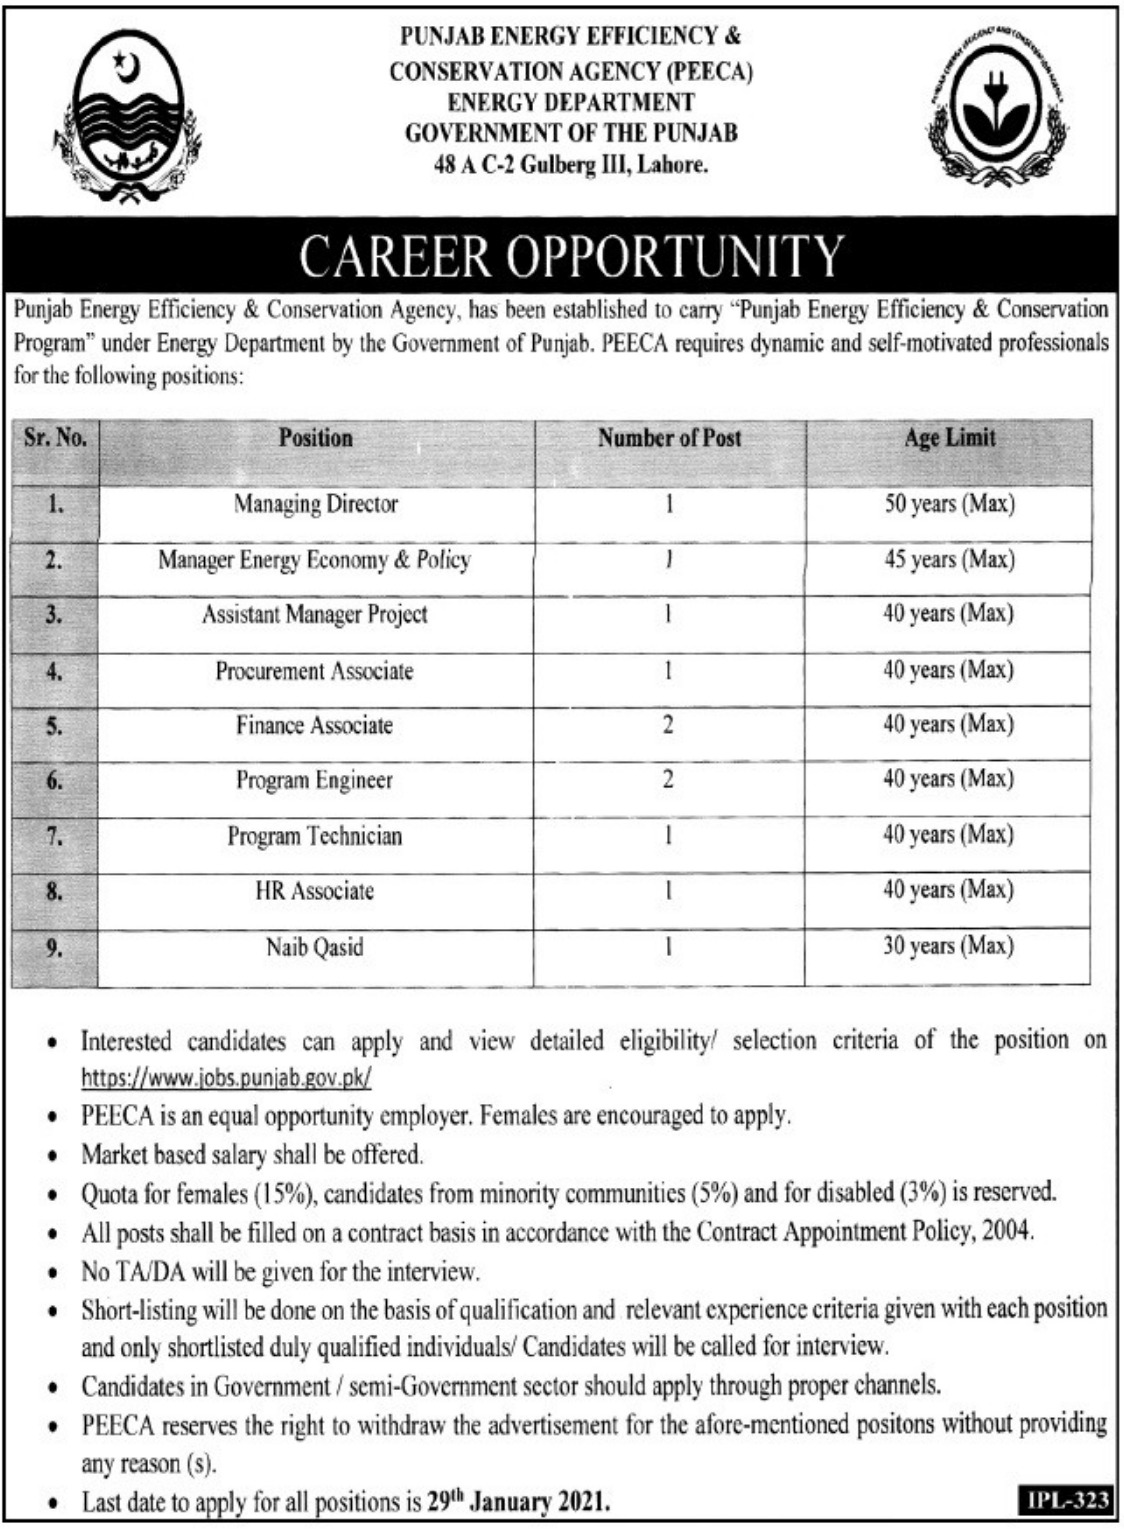 PEECA Energy Department Punjab Jobs January 2021